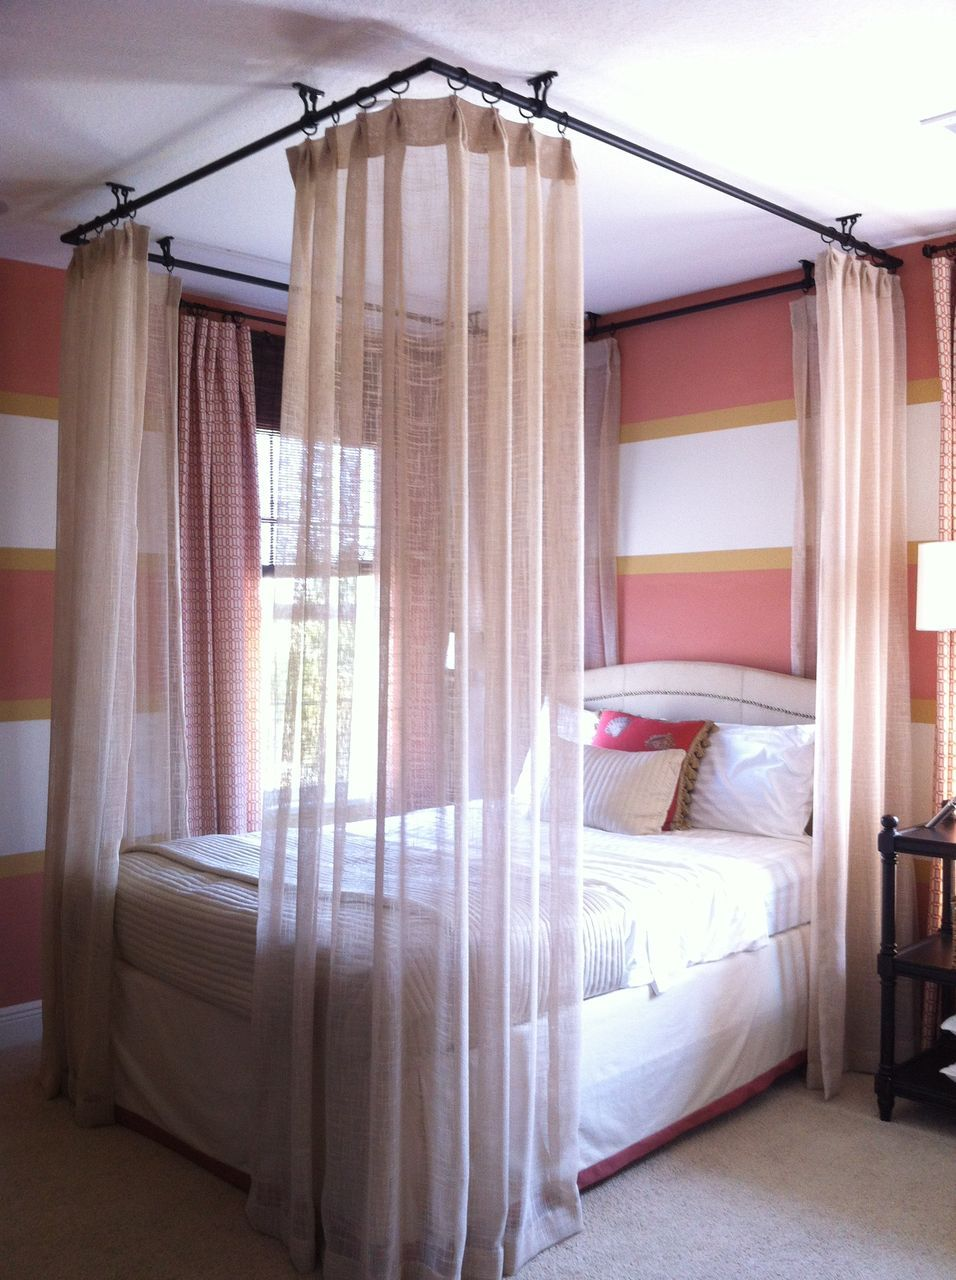 Ceiling hung curtains around bed   Bedrooms in 2019